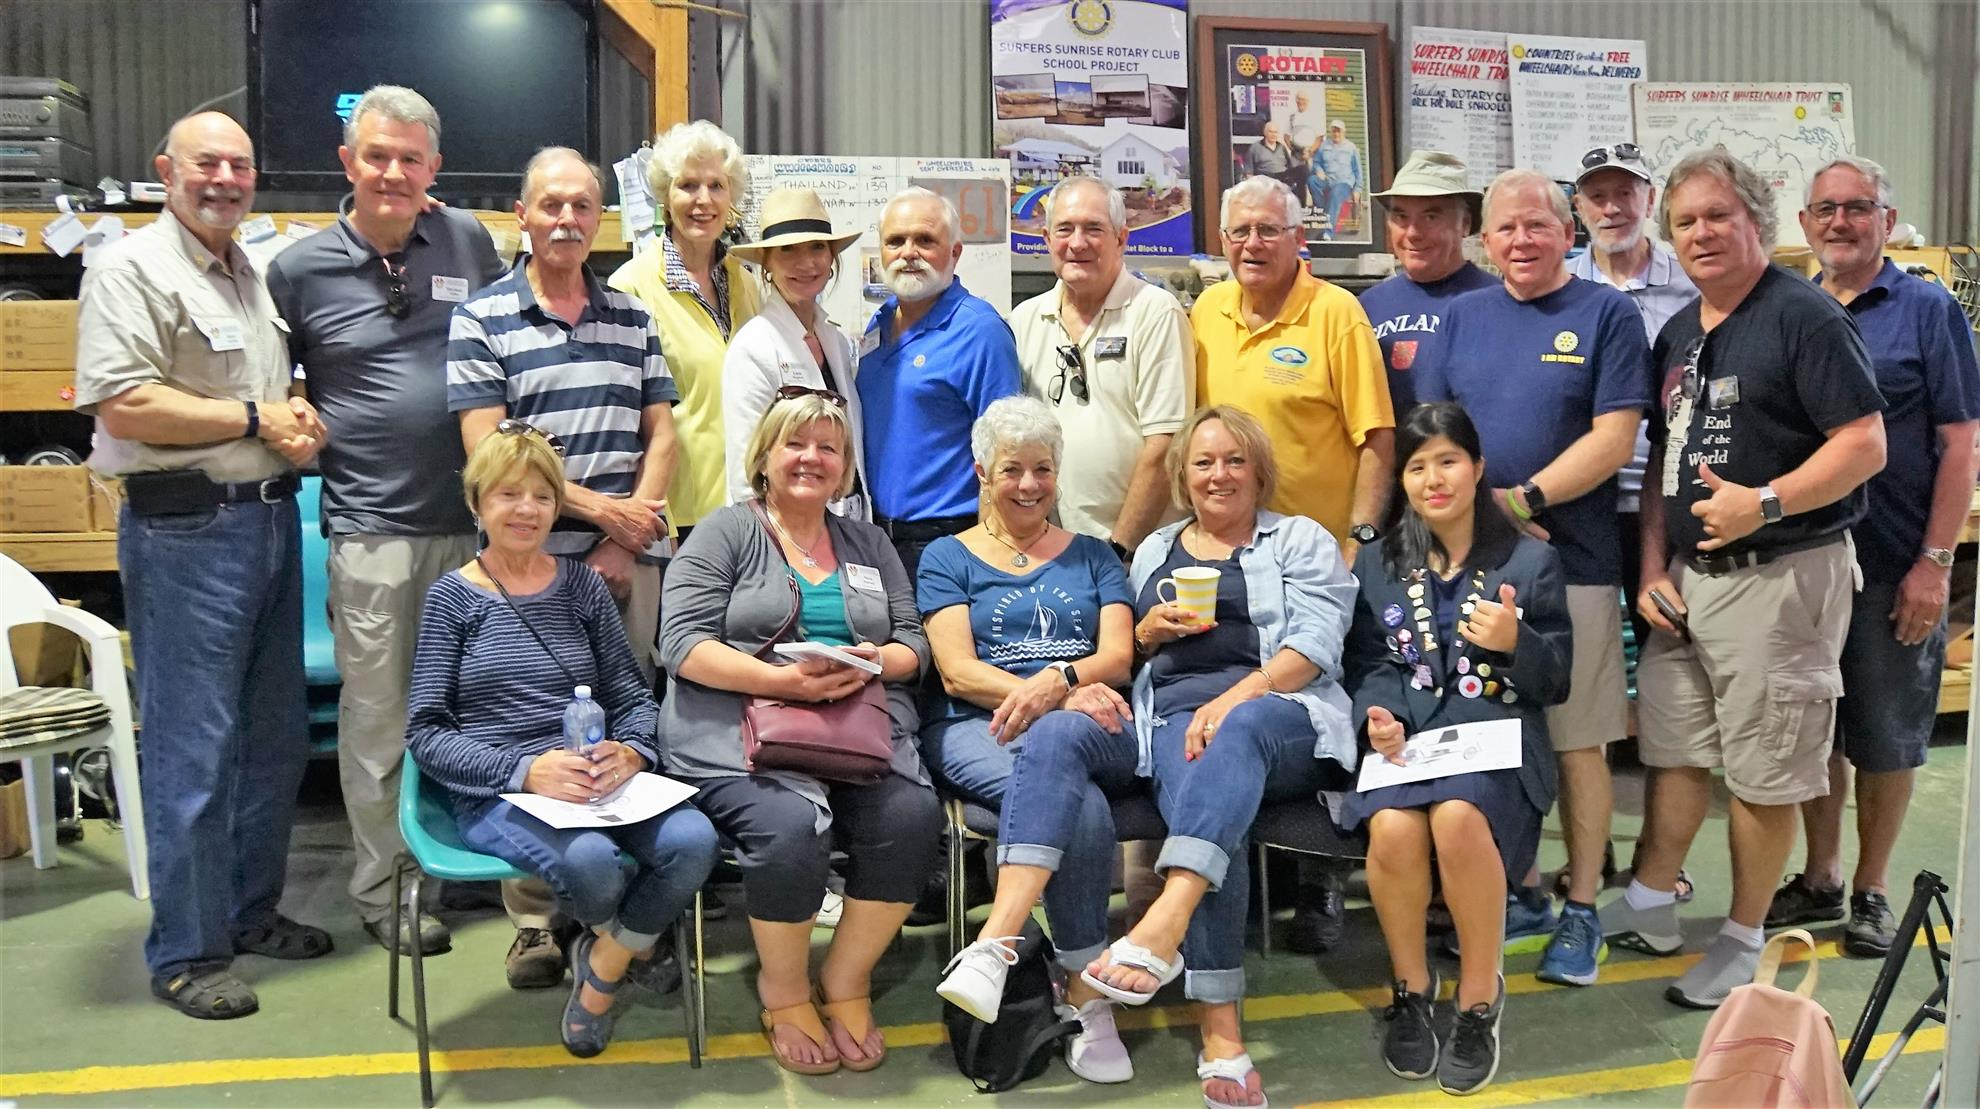 A District 5020 RFE team with the Rotary Club of Surfers Paradise, at their wheelchair manufacturing facility in Australia . They have delivered 9,500 wheelchairs so far.